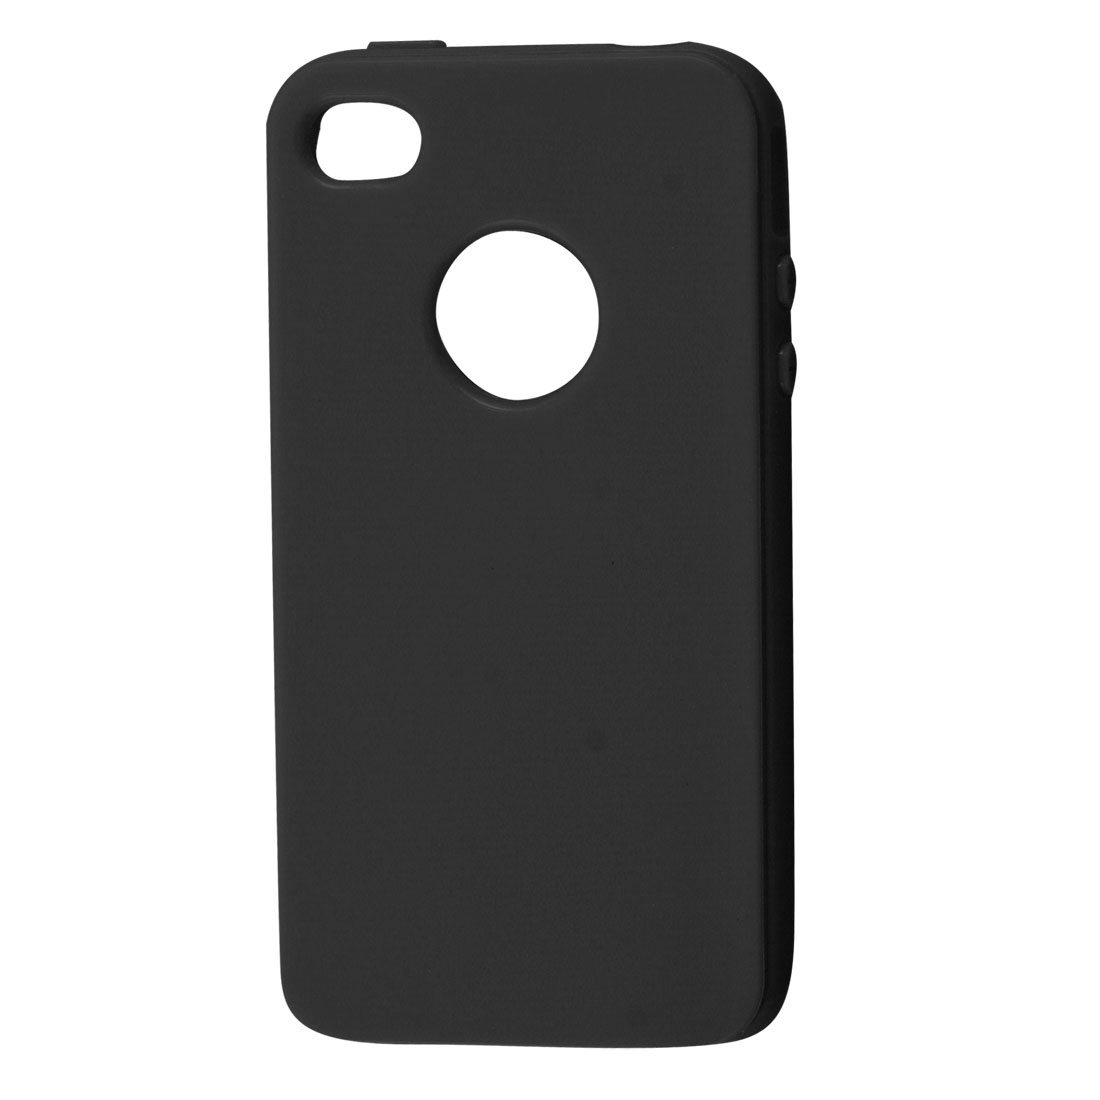 Soft Plastic Case Shell Black for Apple iPhone 4 4G 4GS 4S